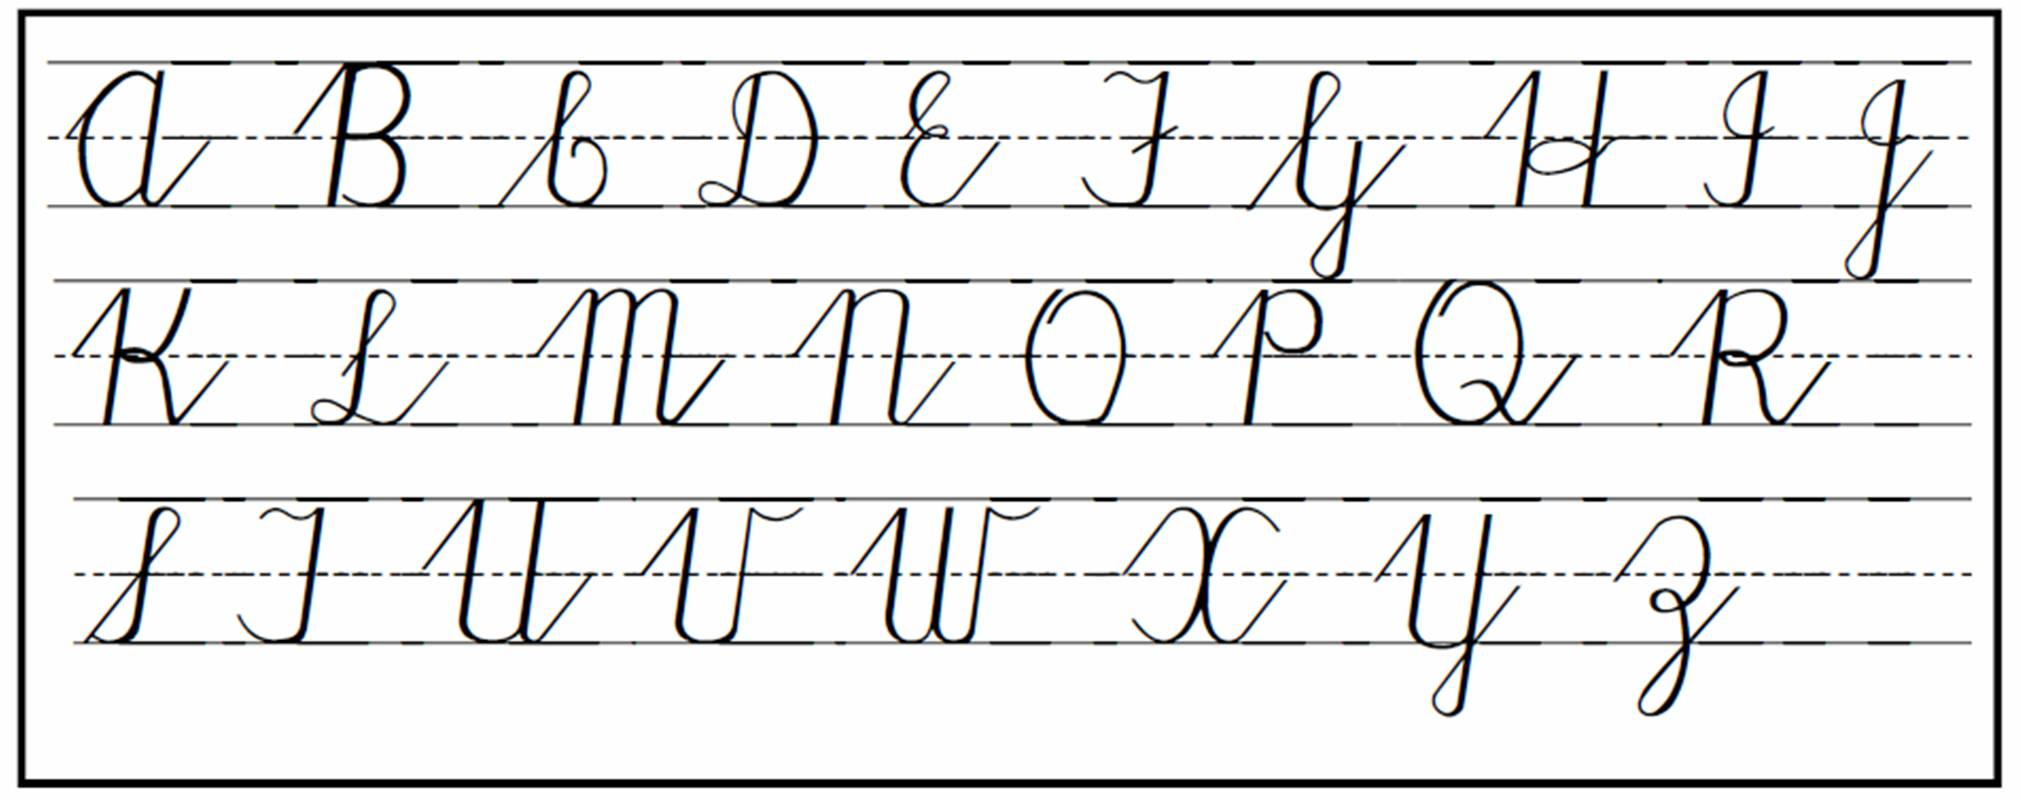 Letter In Cursive Cursive Handwriting Step By Step For Beginners Practical Pages